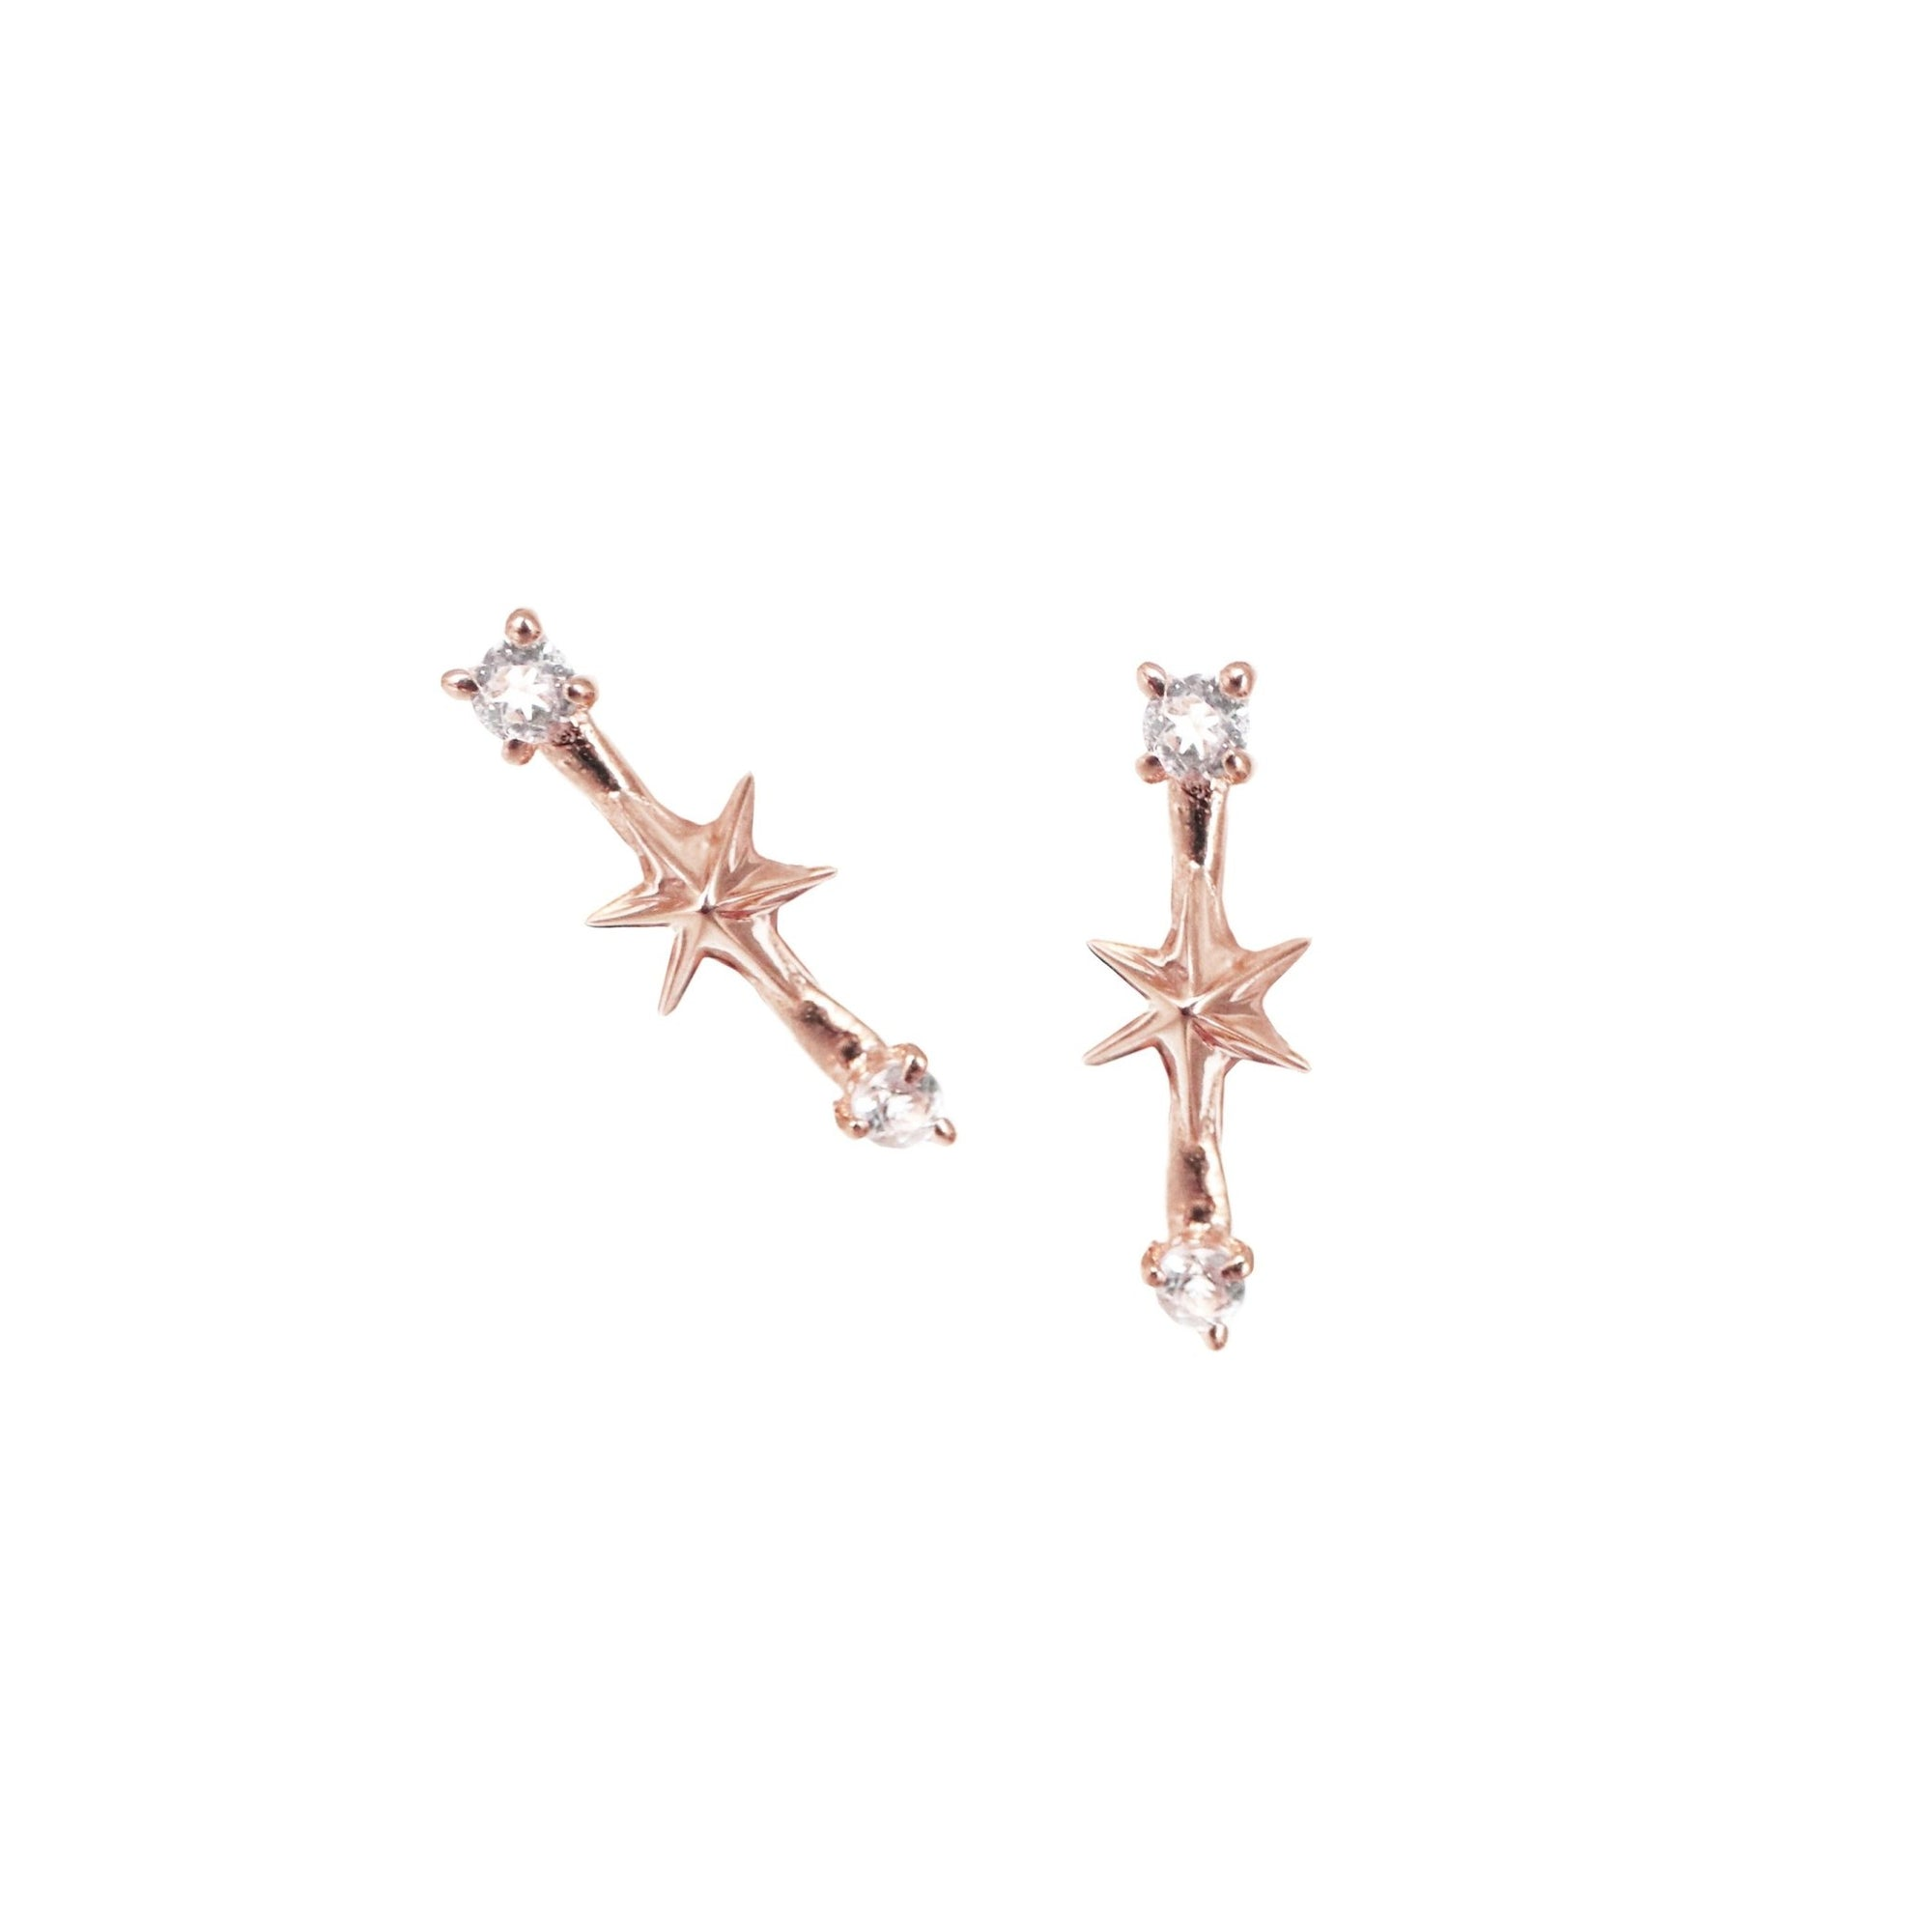 TINY IMAGINE SHOOTING STAR STUDS - CUBIC ZIRCONIA & ROSE GOLD - SO PRETTY CARA COTTER